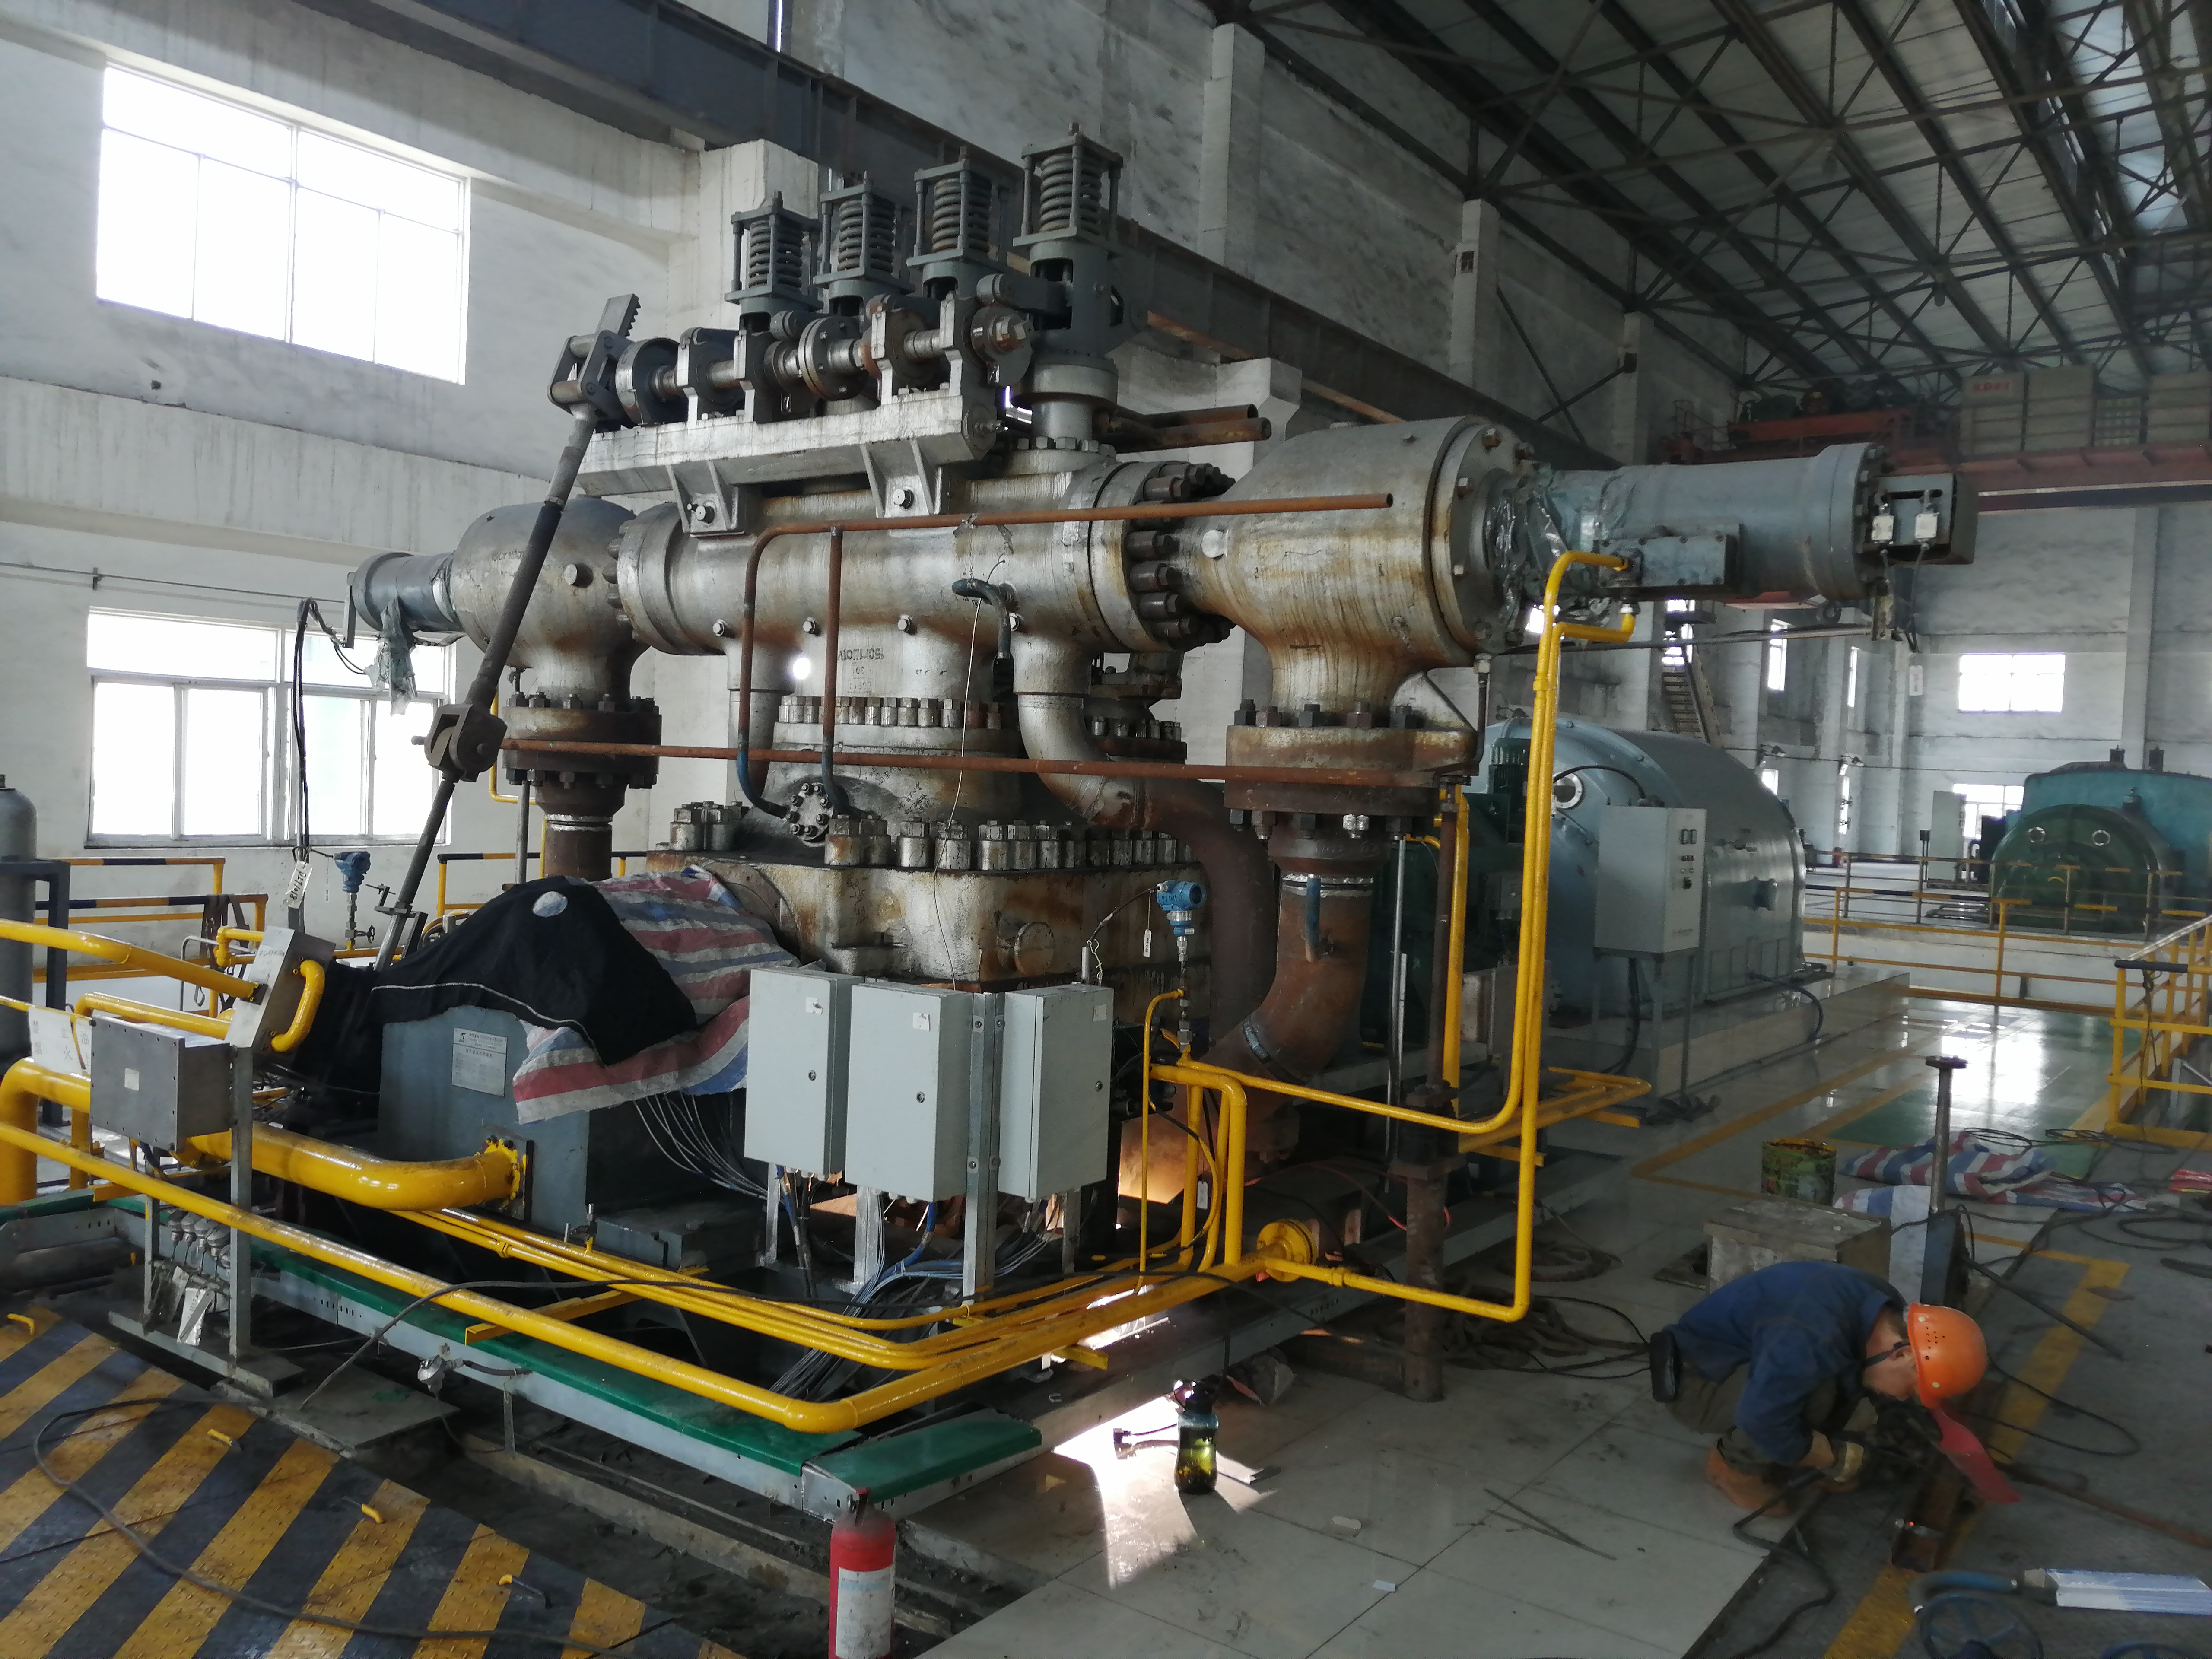 Extraction turbine